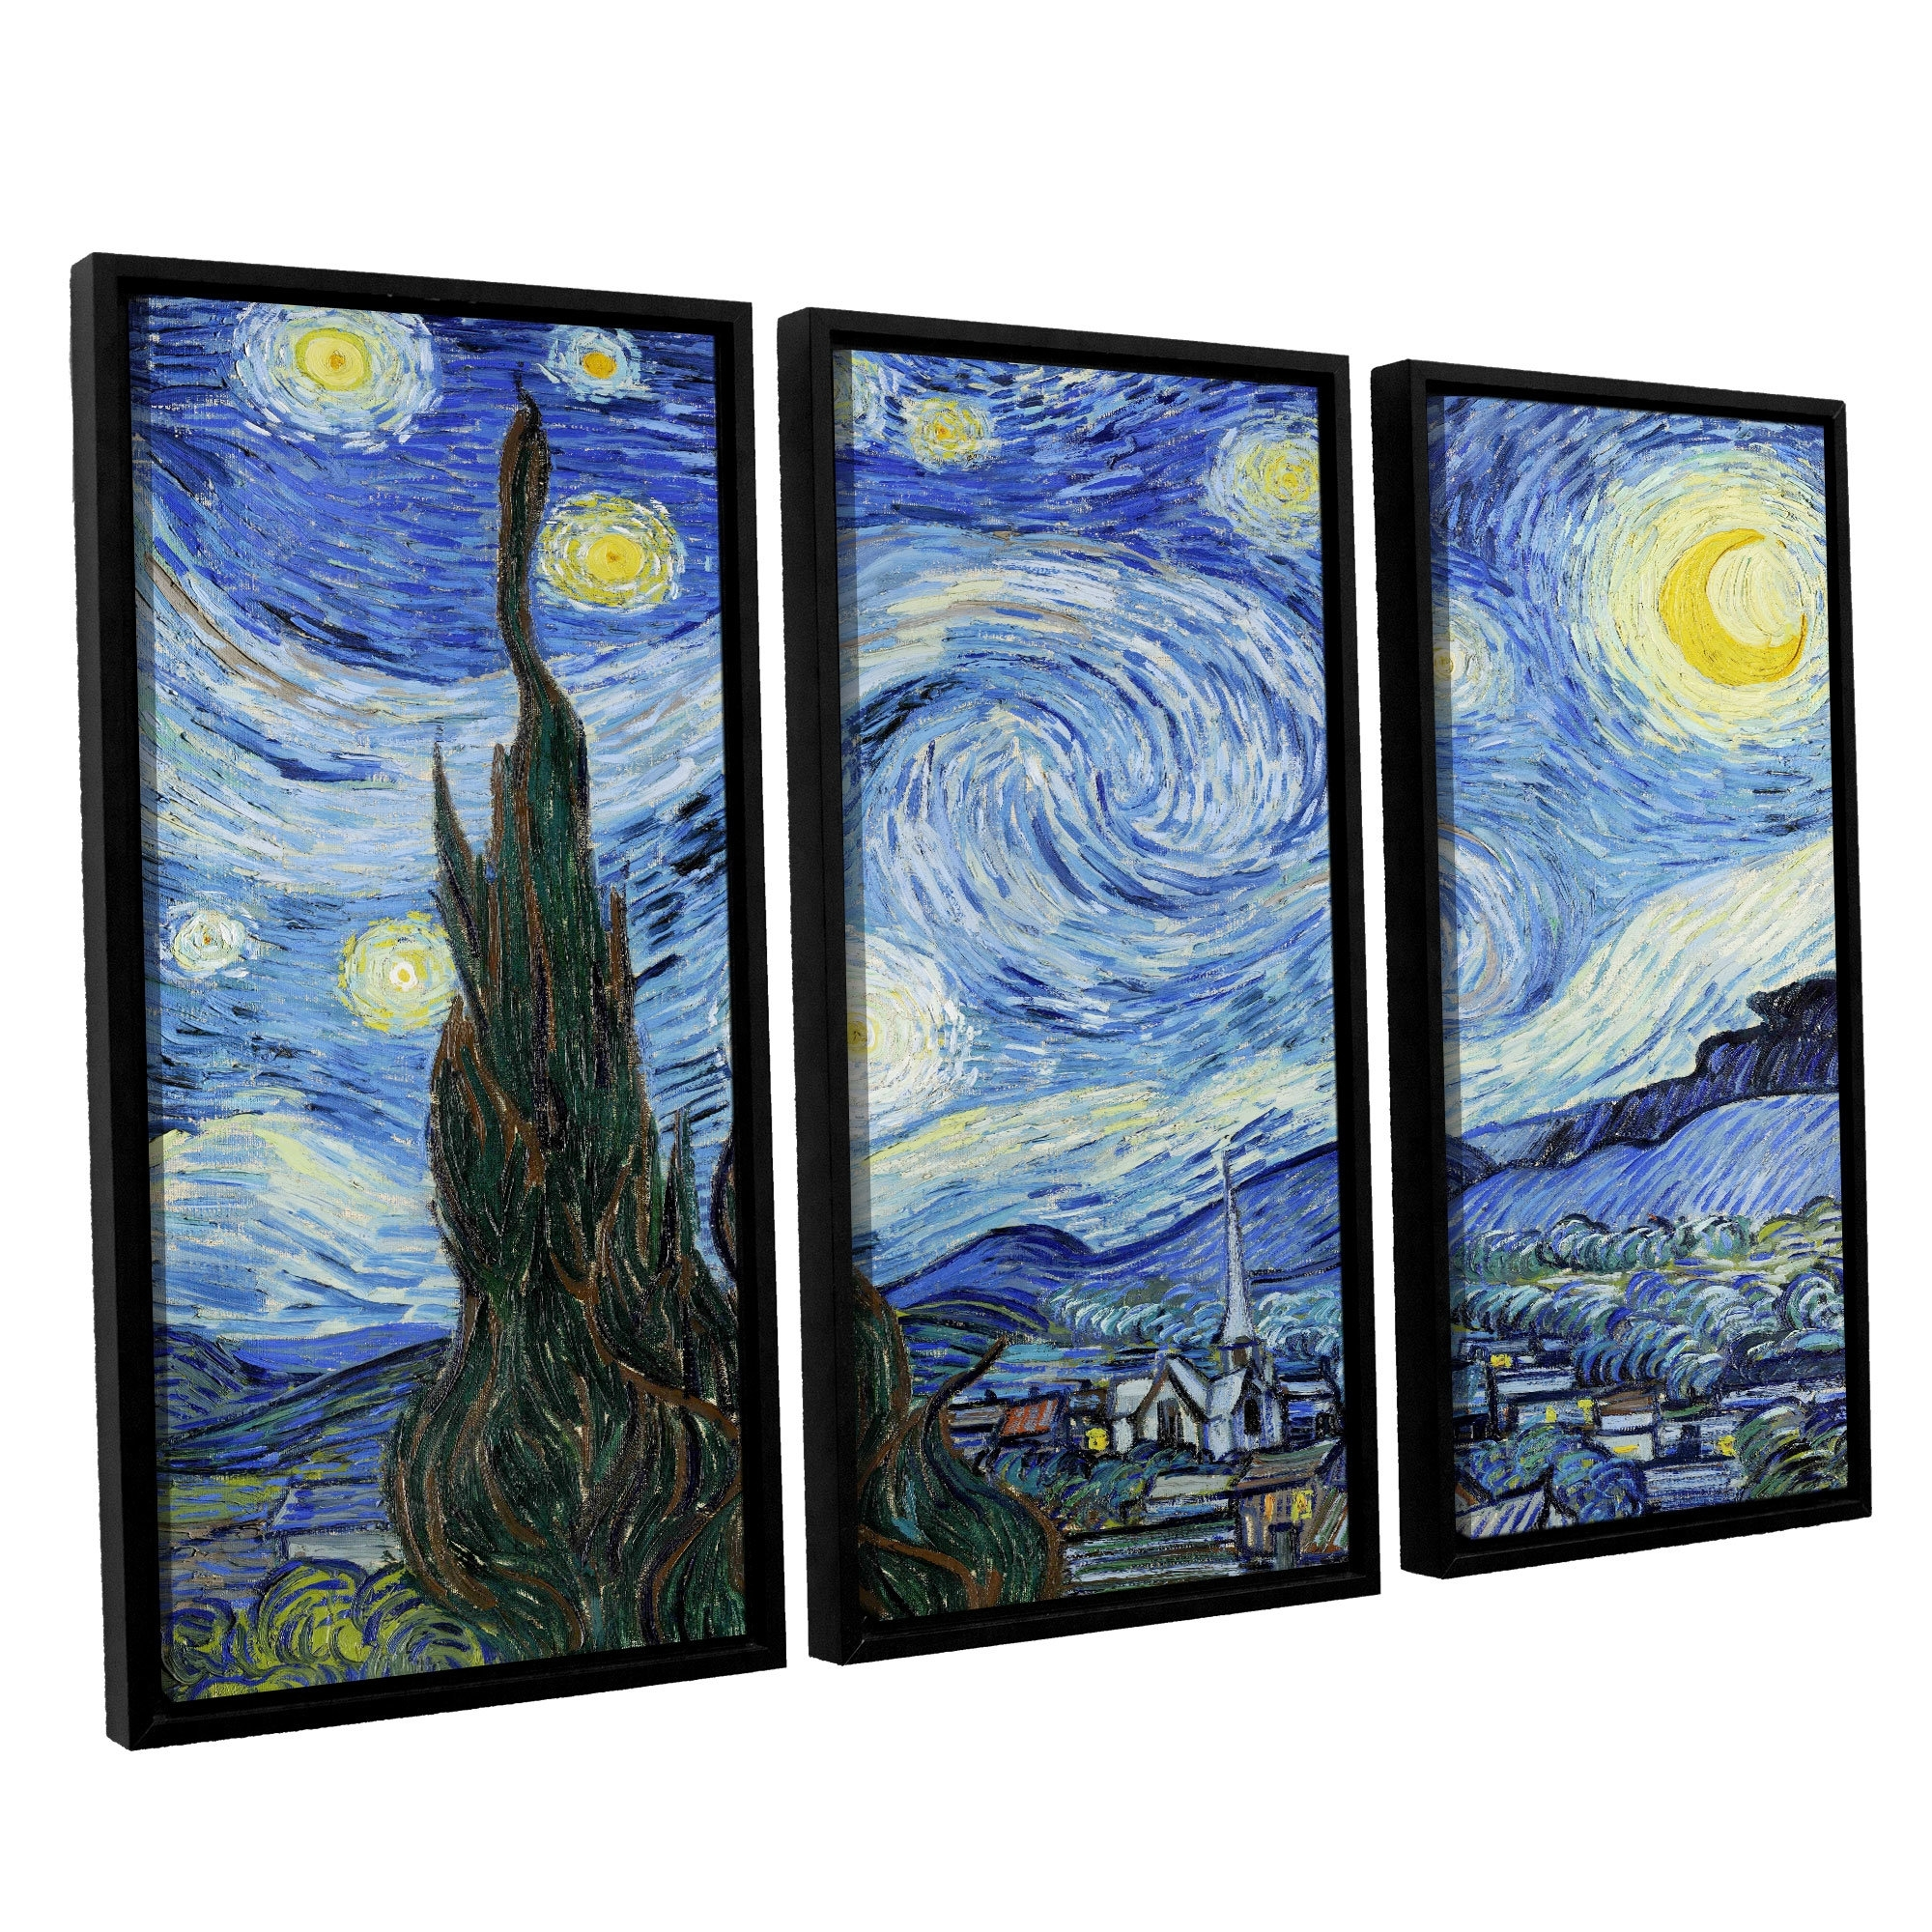 Artwall Starry Night (Lighter Version)Vincent Van Gogh 3 Piece For Latest Vincent Van Gogh Multi Piece Wall Art (View 9 of 20)